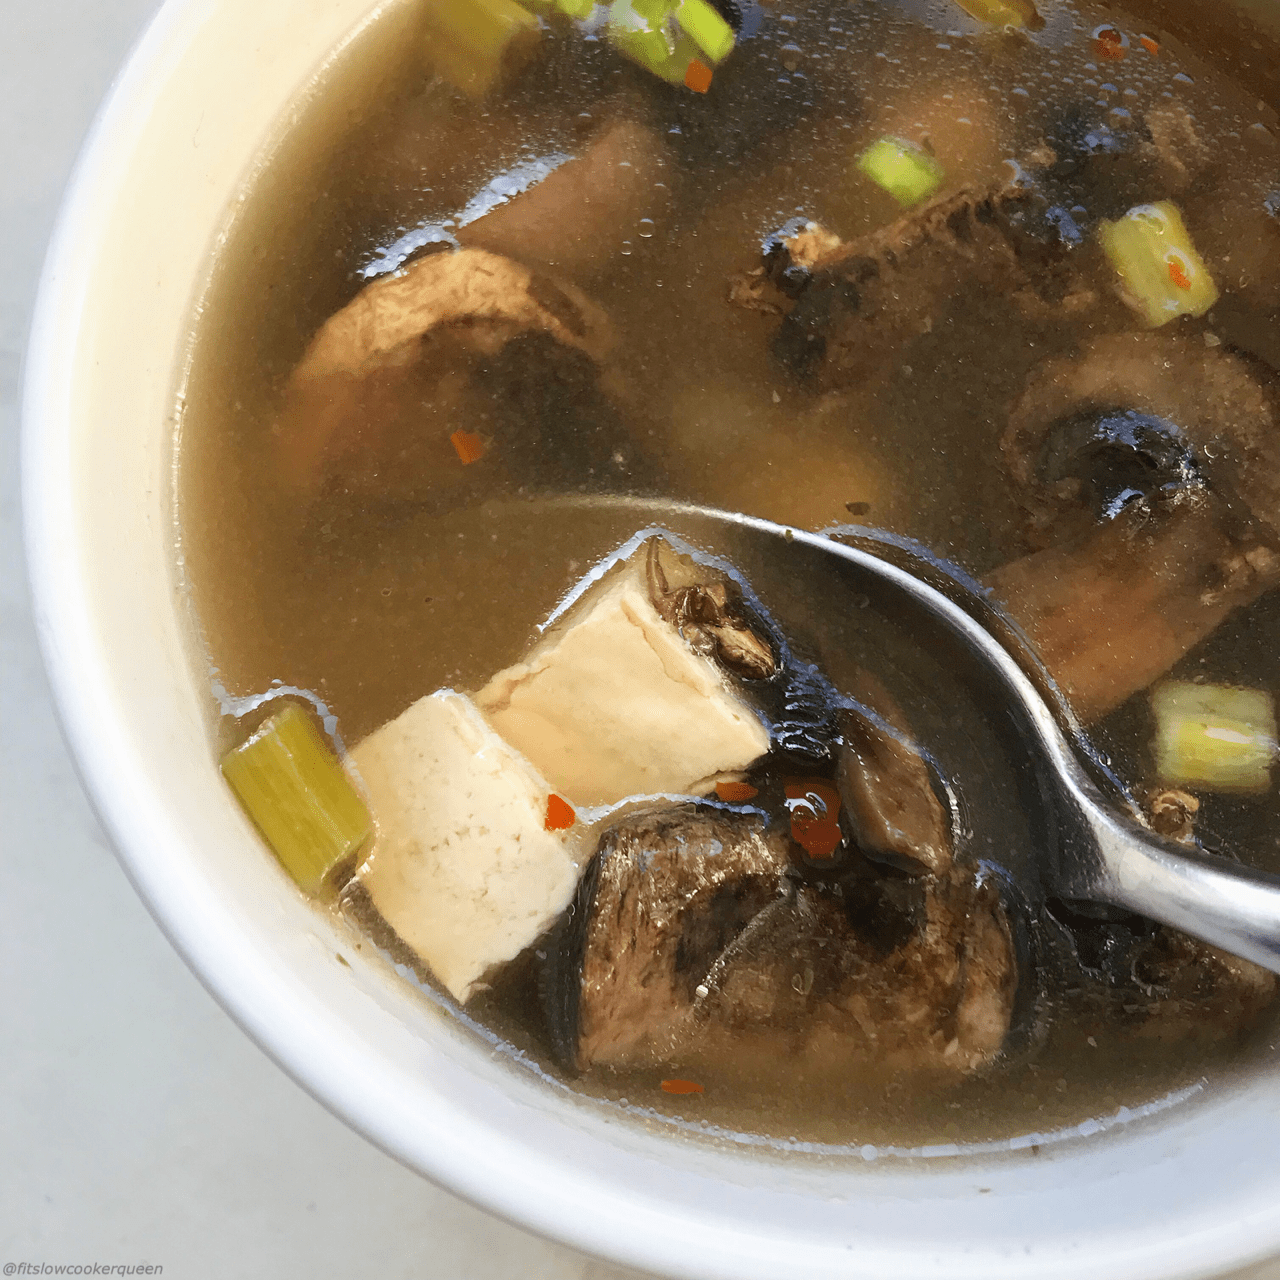 Chinese hot & sour soup is simple soup that can be made many different ways. This slow cooker version is vegan, vegetarian, and low-sodium.